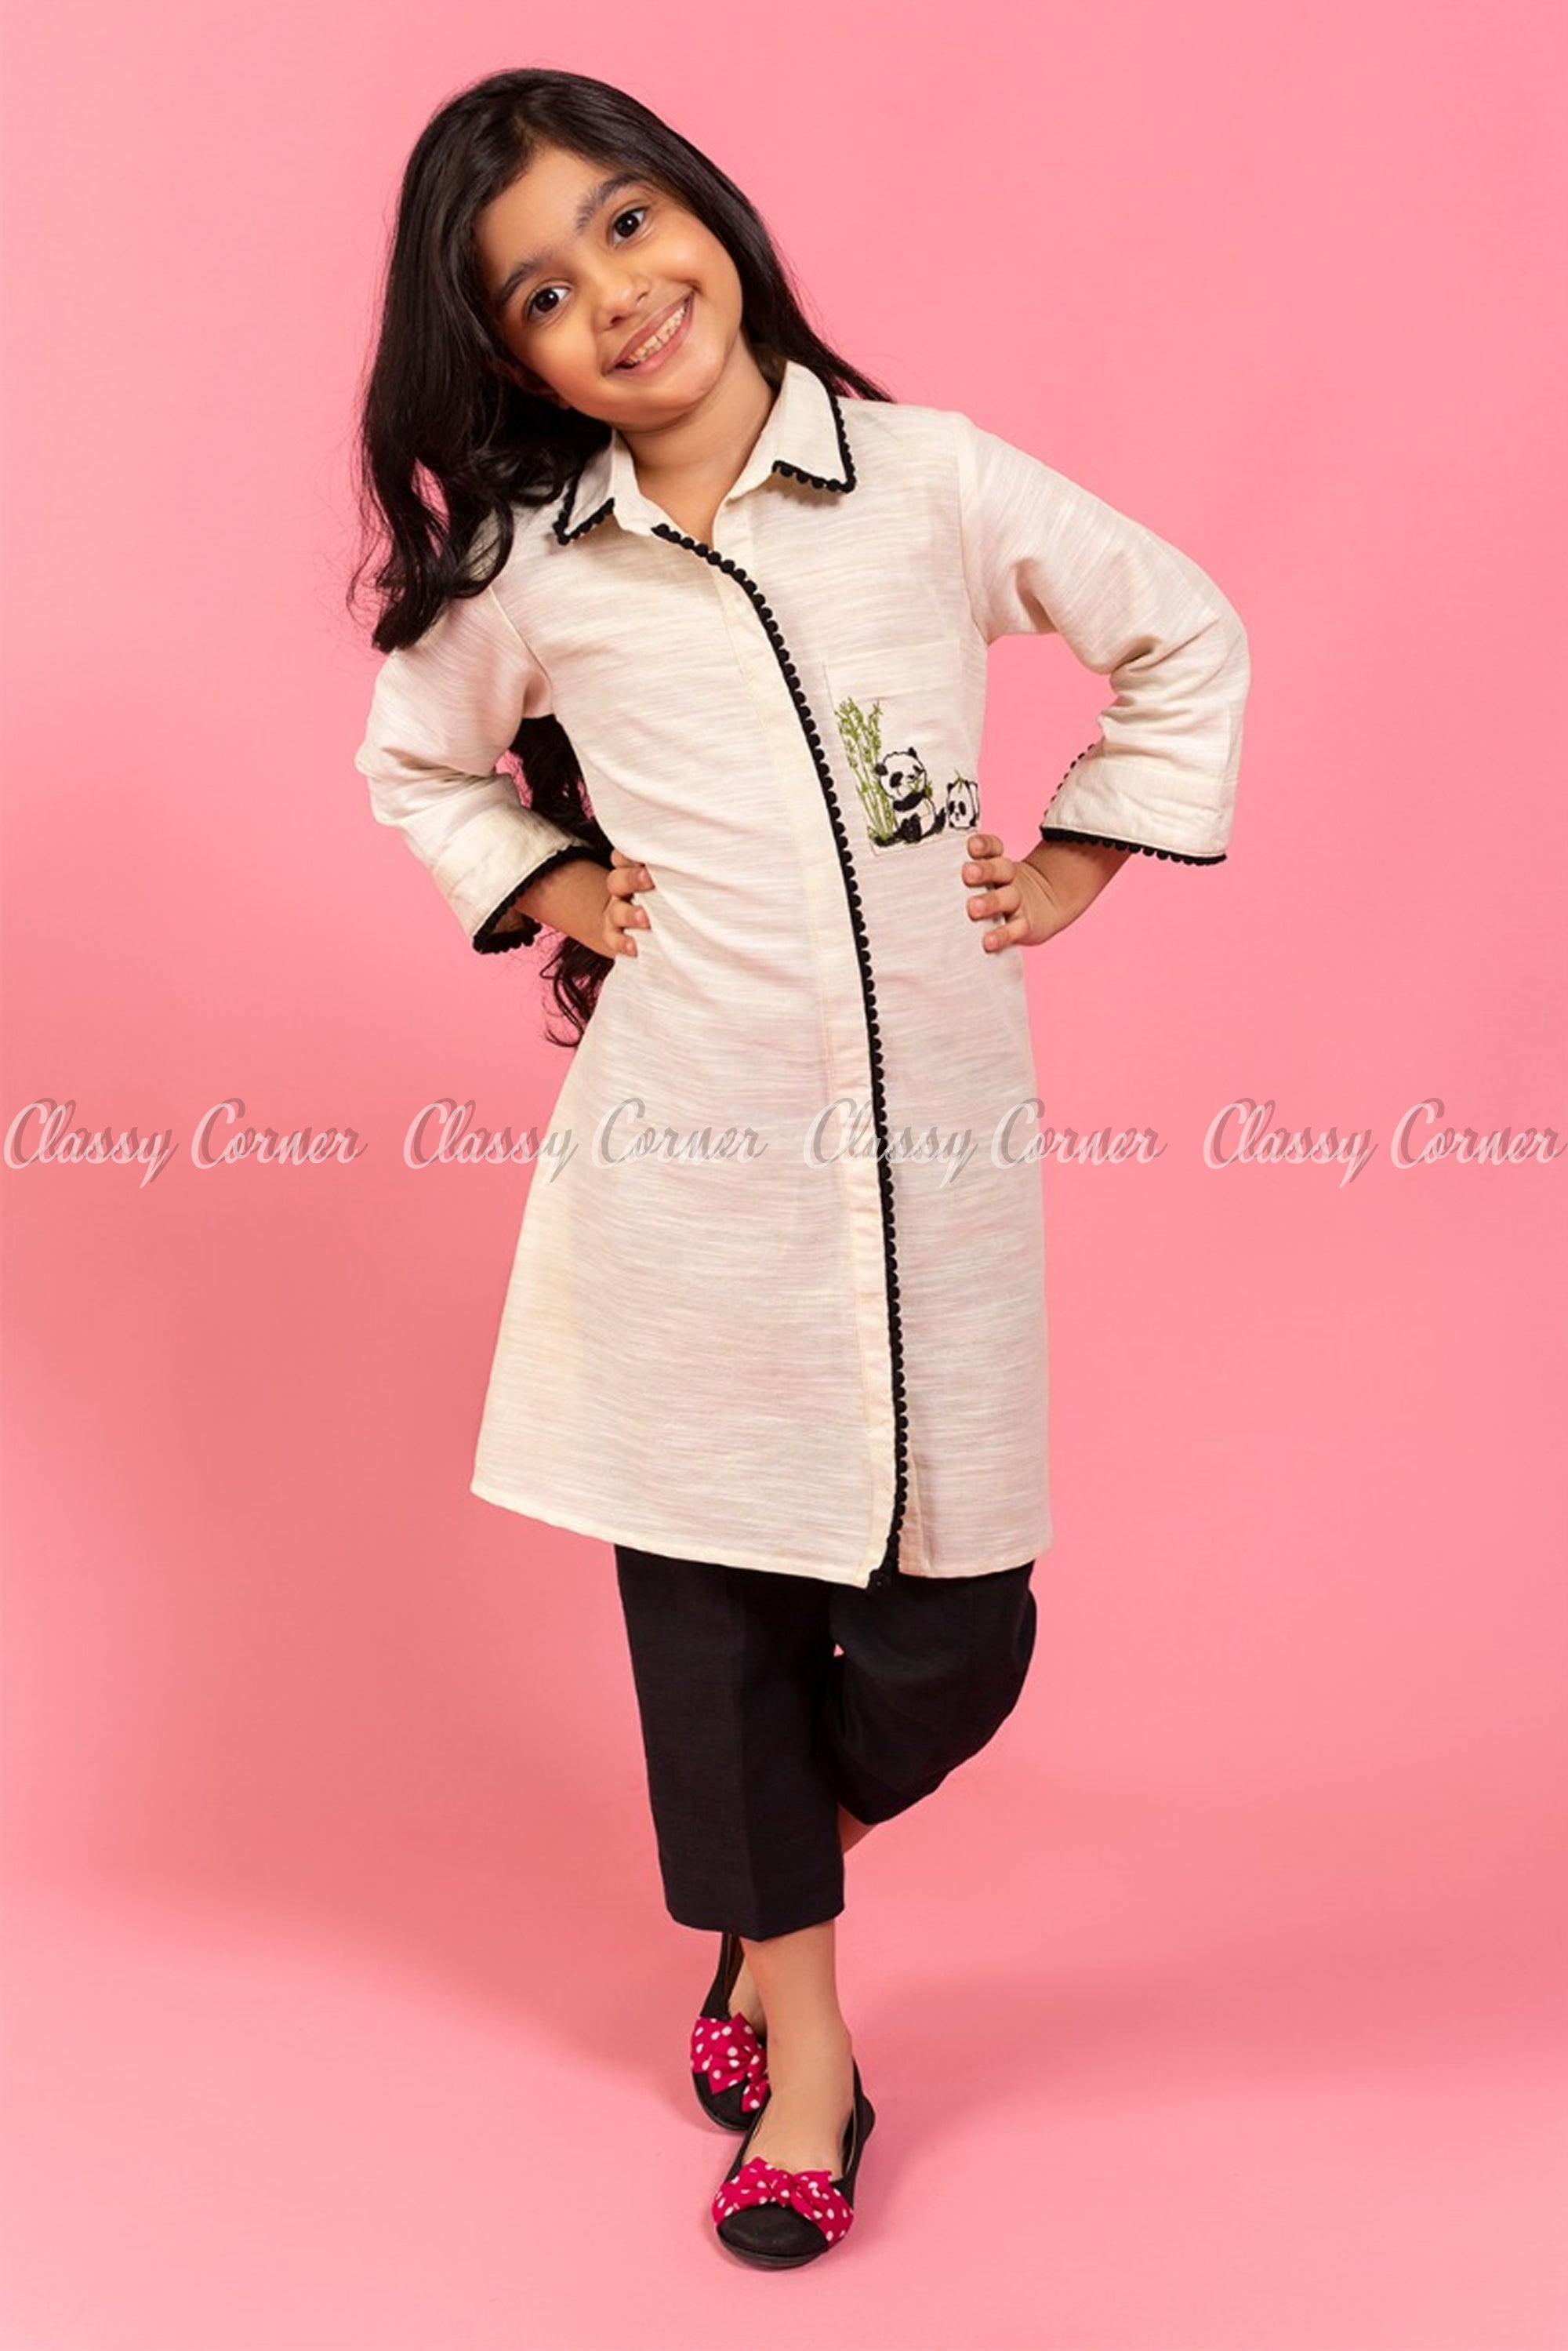 Panda Embroidery White and Black Kids Salwar Kameez